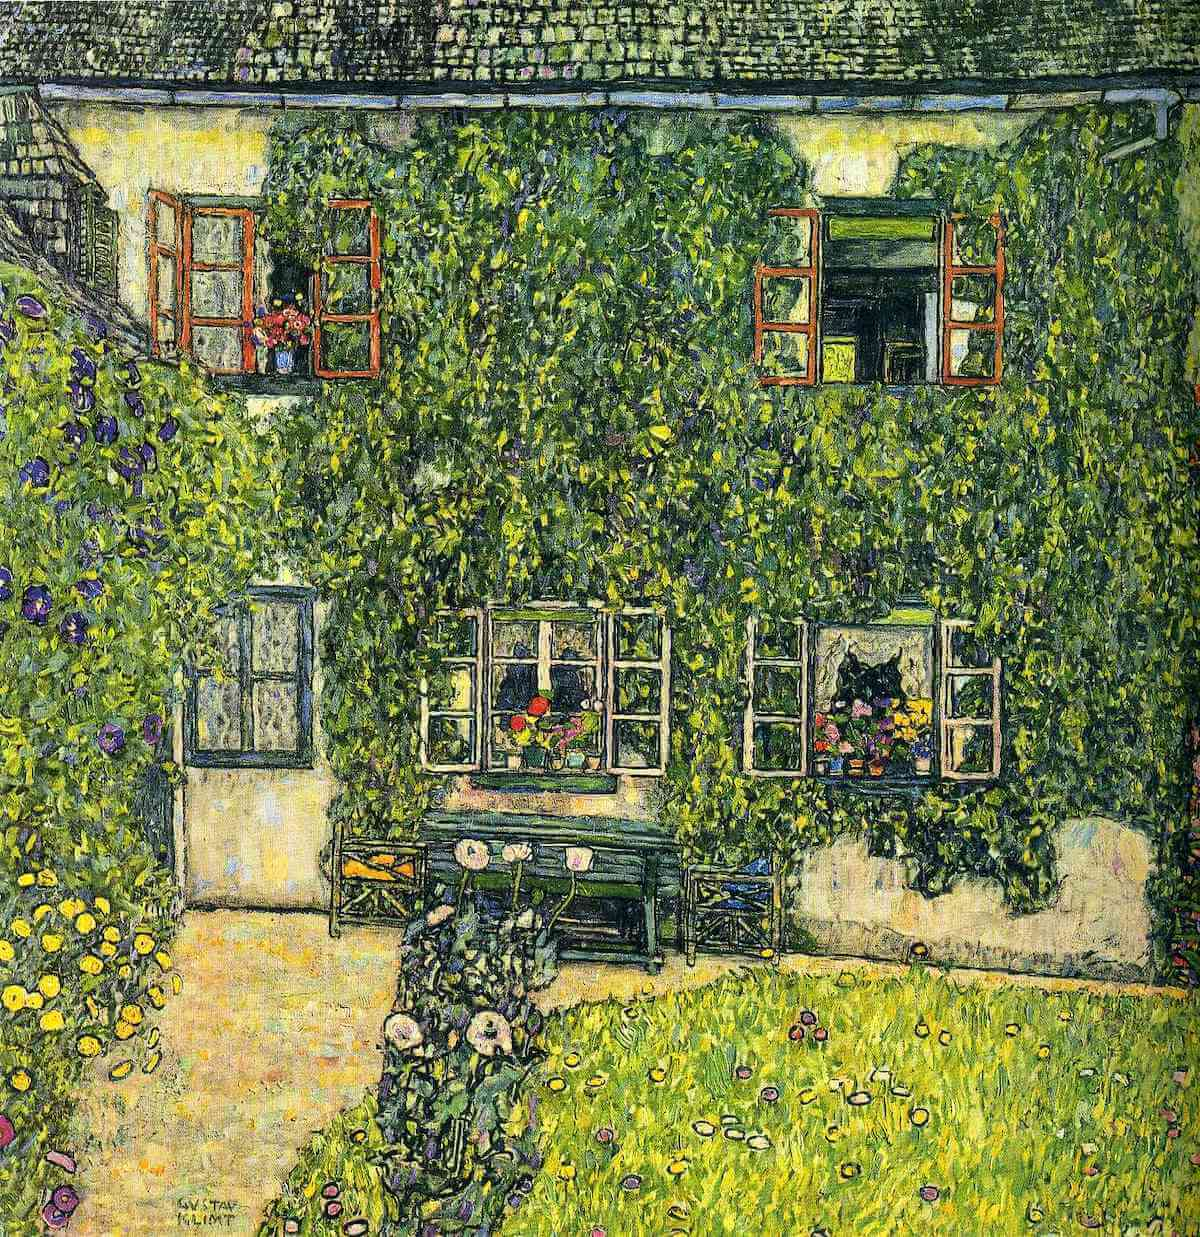 The House of Guardaboschi, 1912 by Gustav Klimt